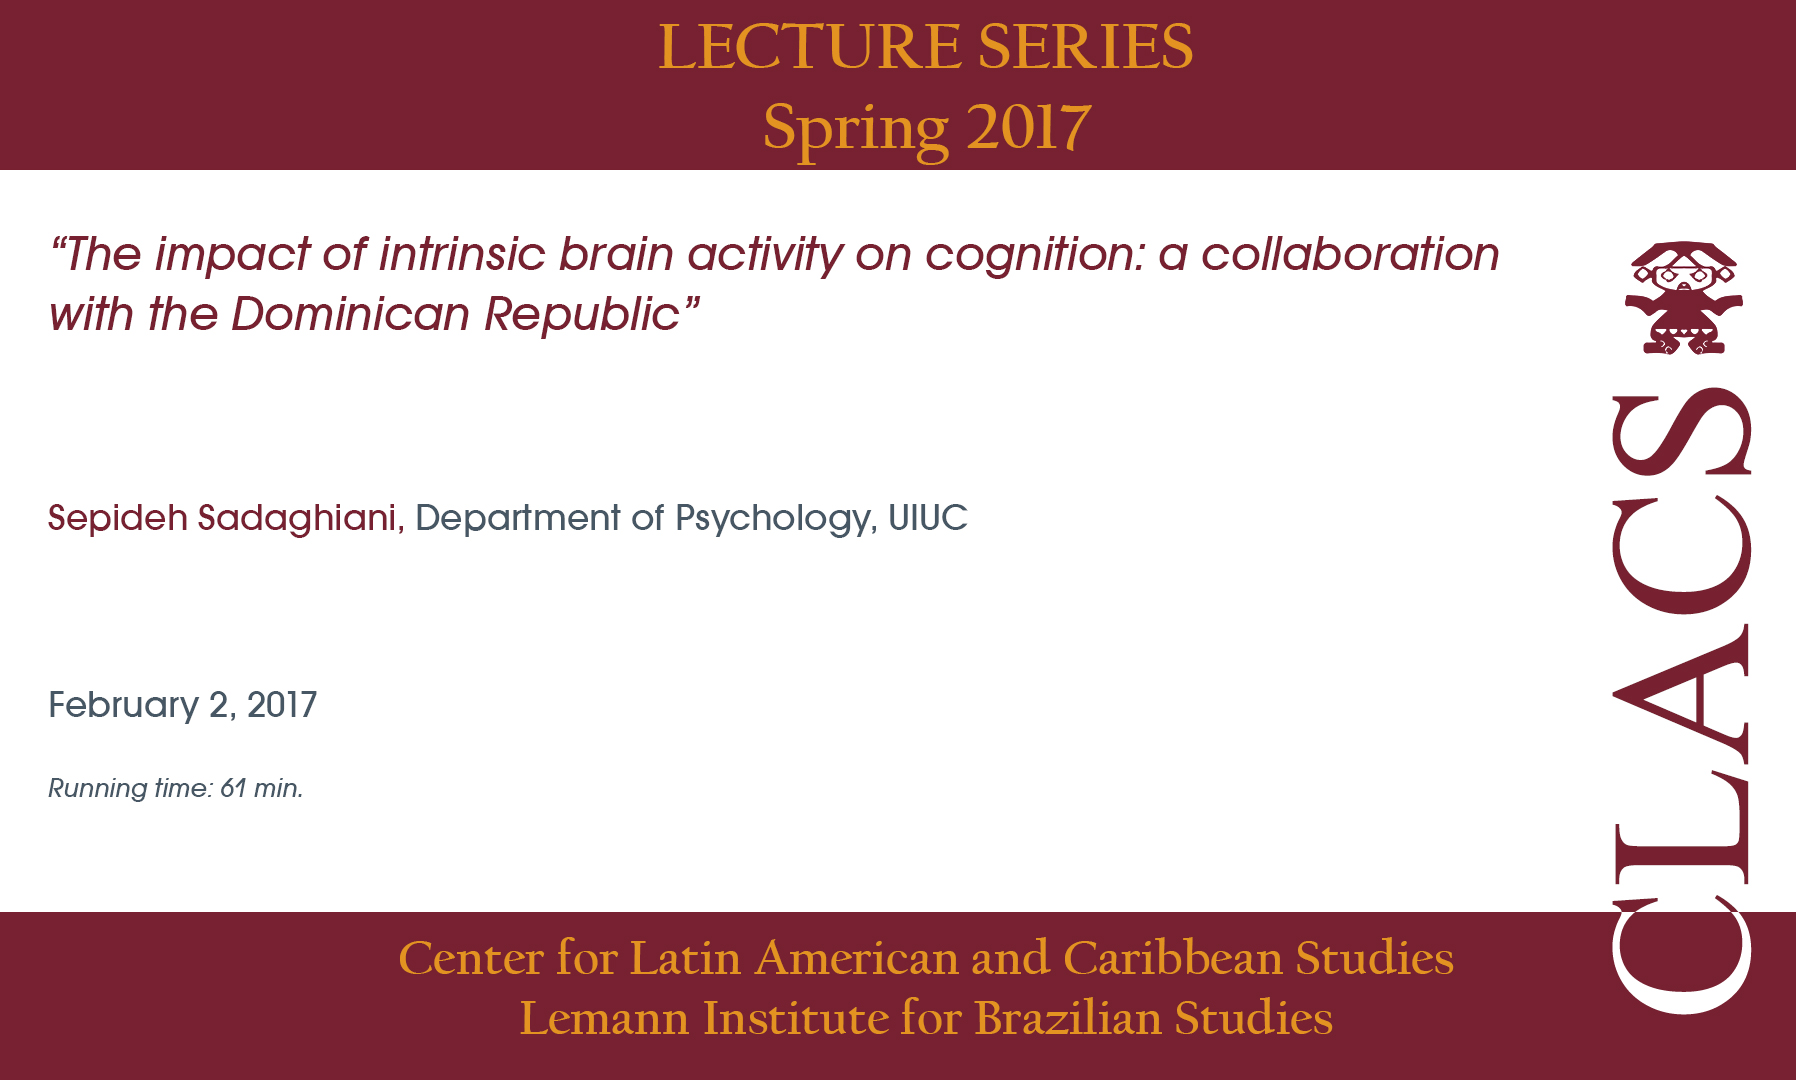 The impact of intrinsic brain activity on cognition: a collaboration with the Dominican Republic